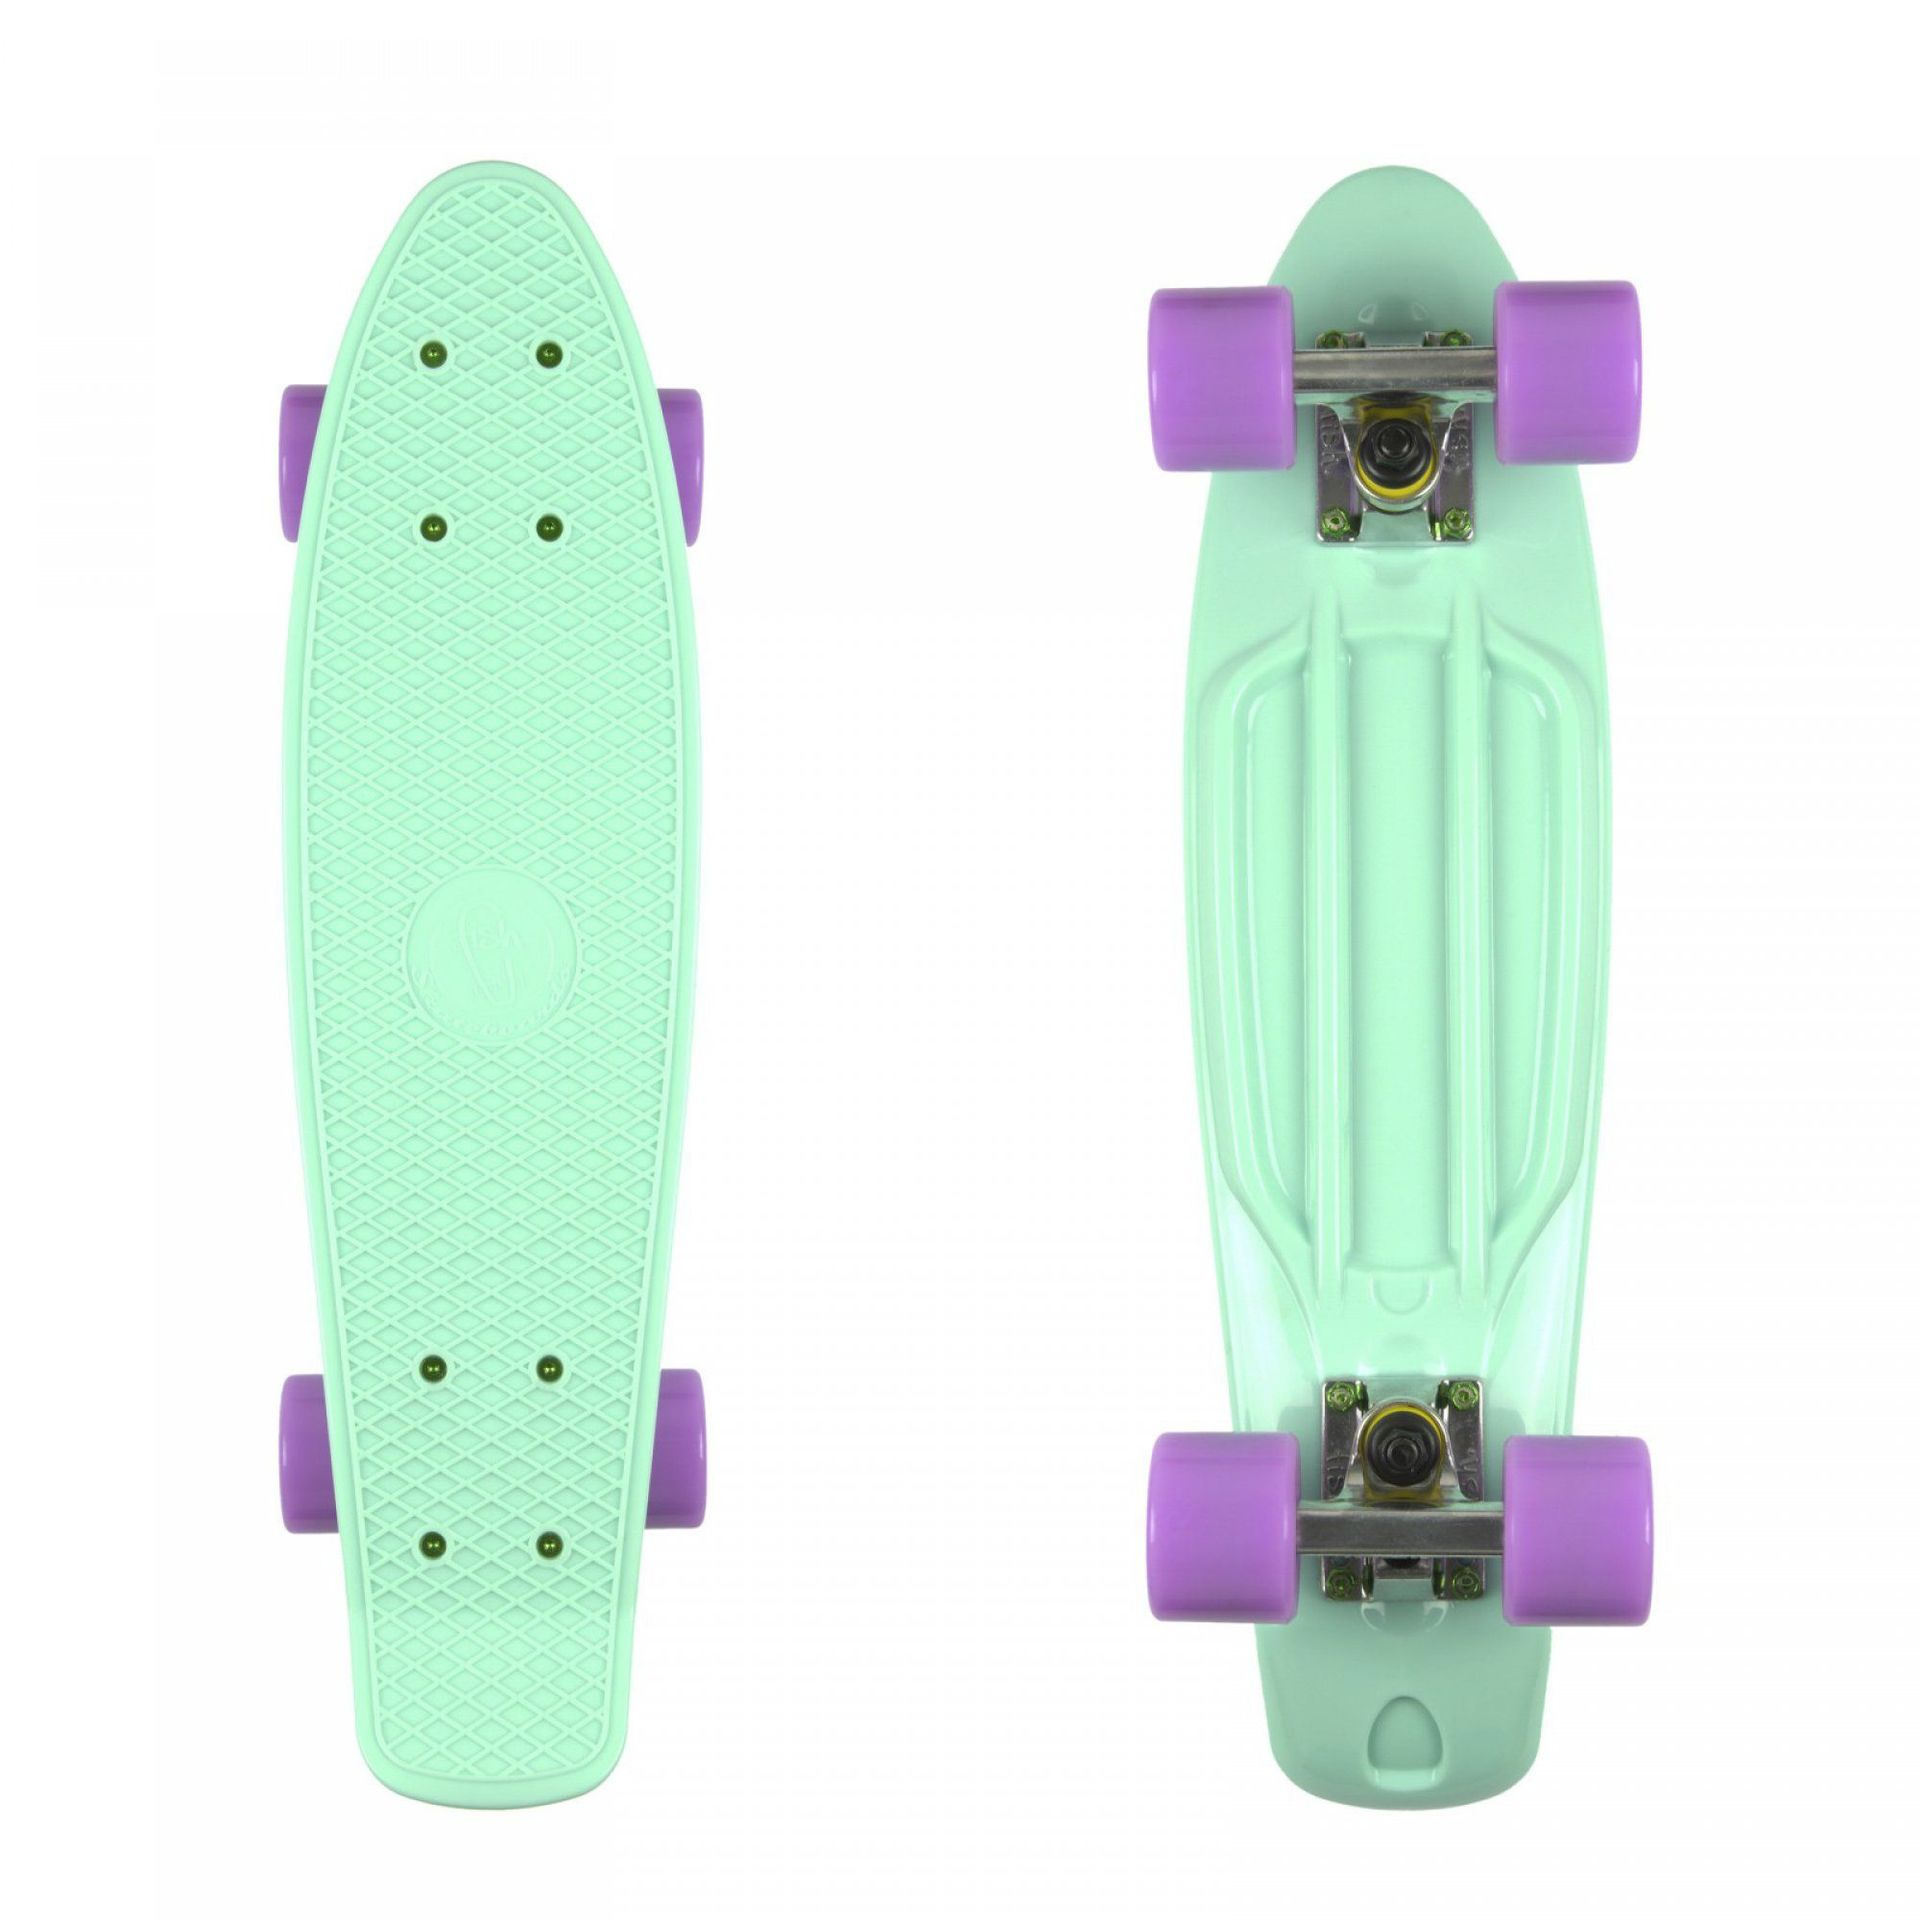 FISHBOARD FISH SKATEBOARDS CLASSIC SUMMER GREEN SILVER PURPLE